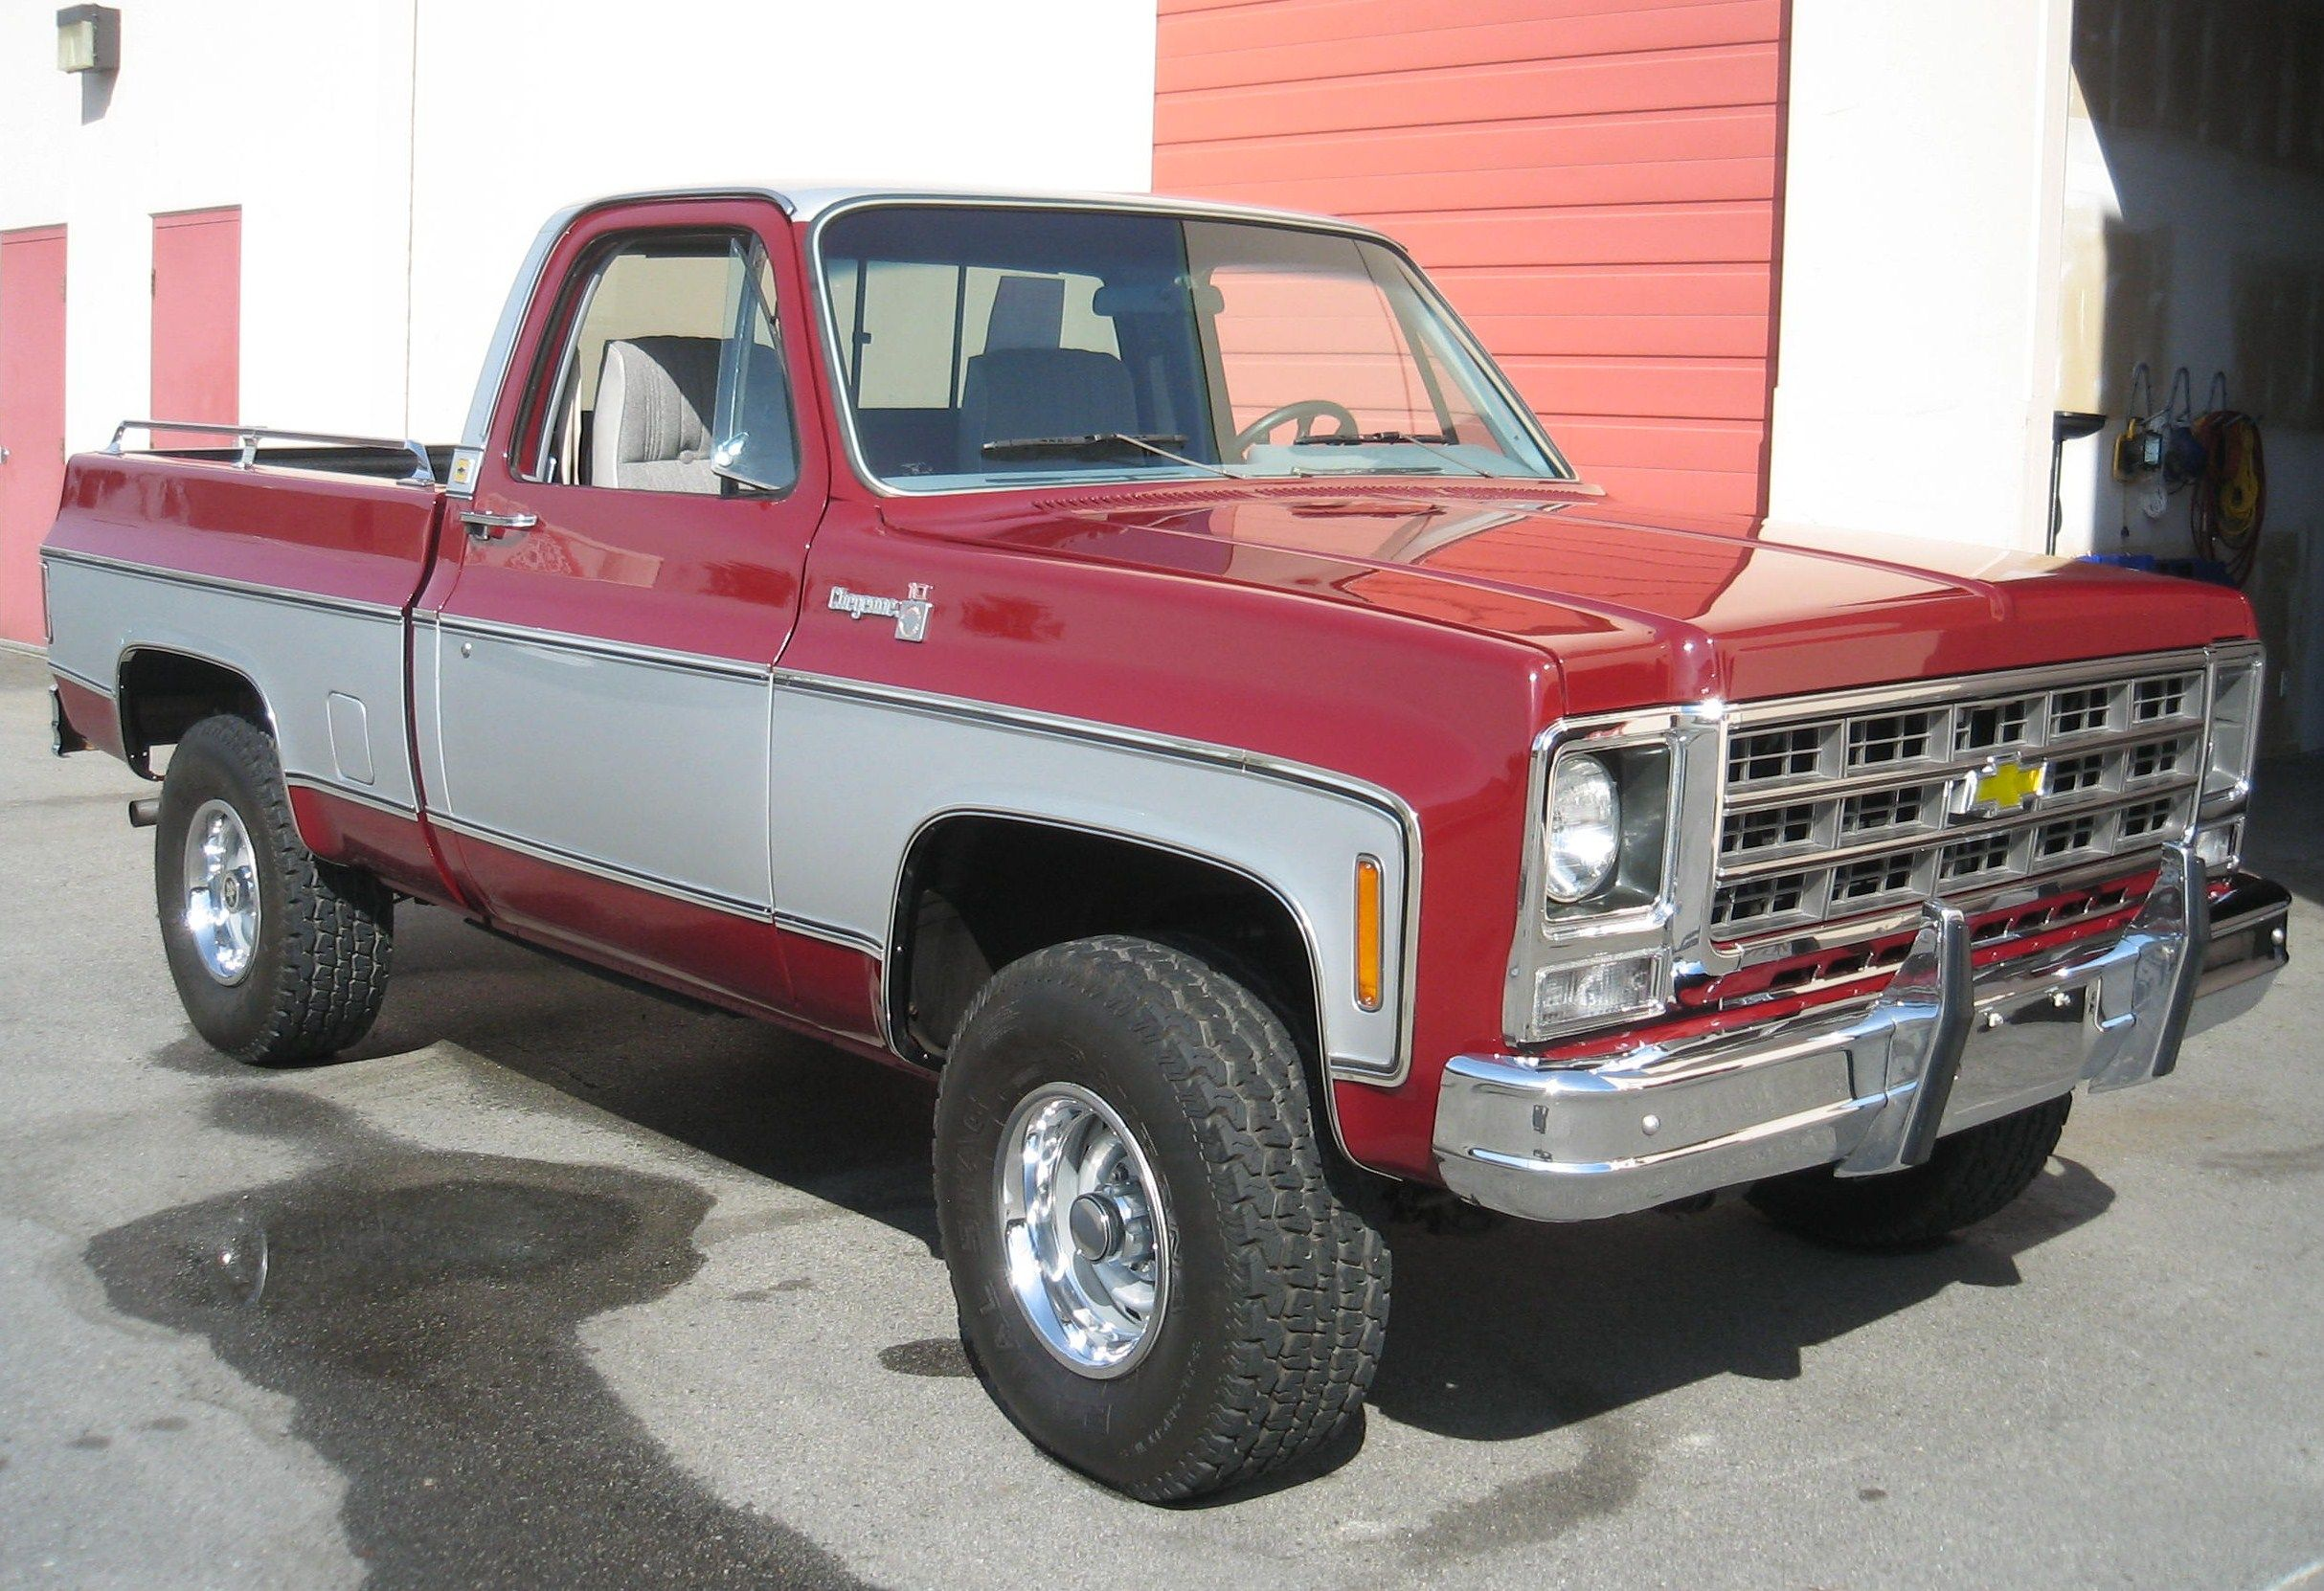 My fully restored low mile 1979 chevy cheyenne 4x4 trucks